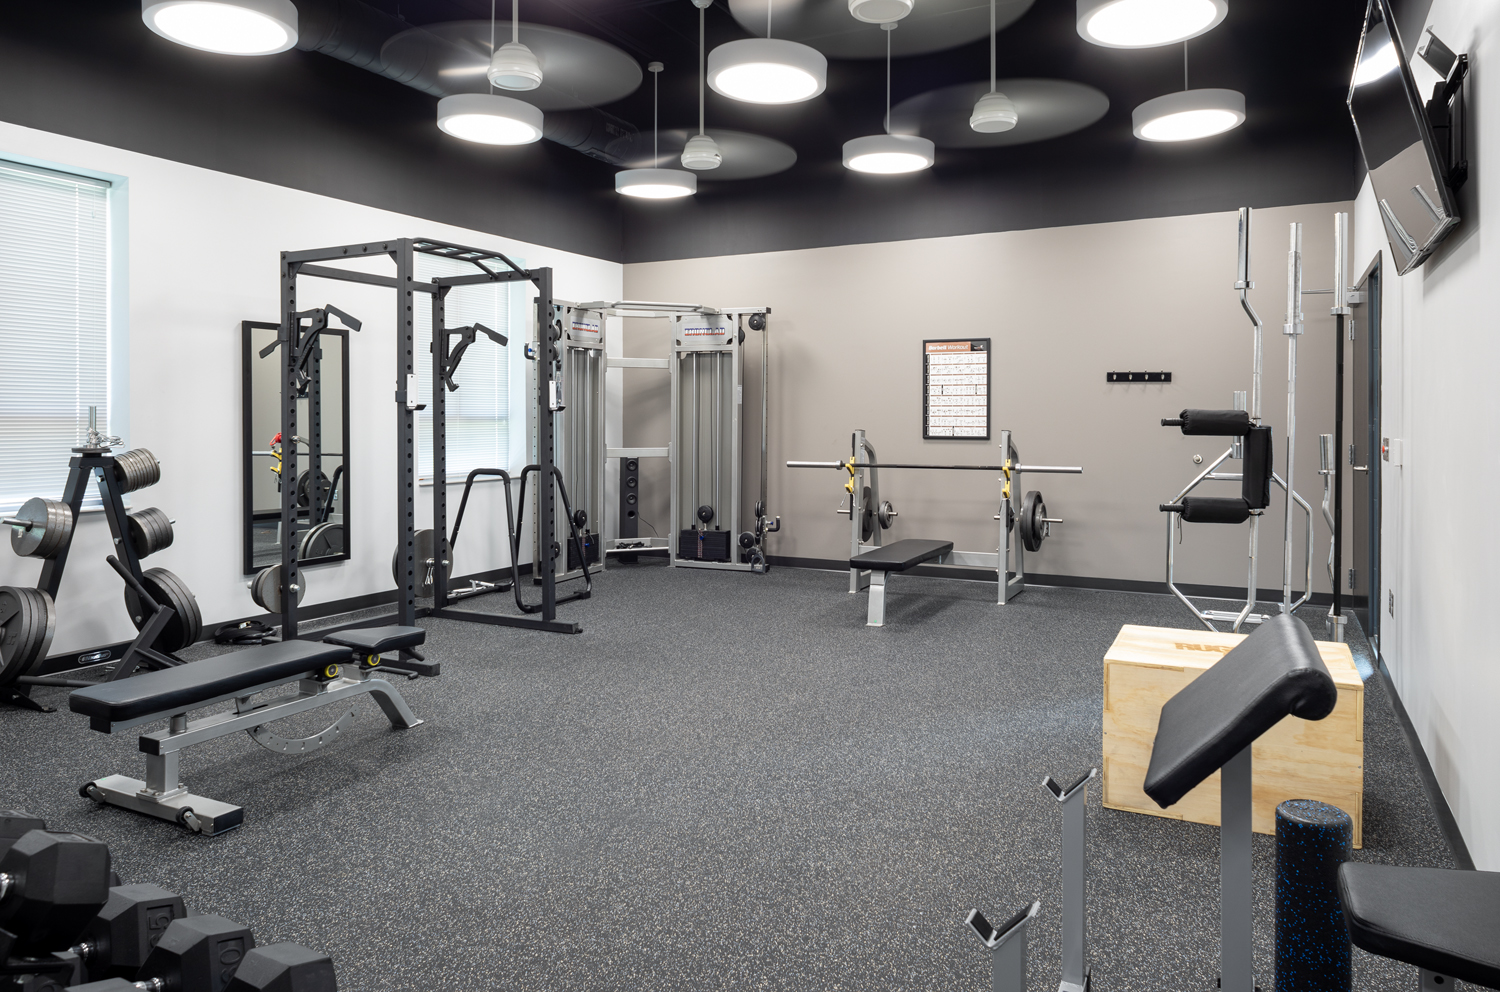 Iredell County PSC_interior gym.jpg